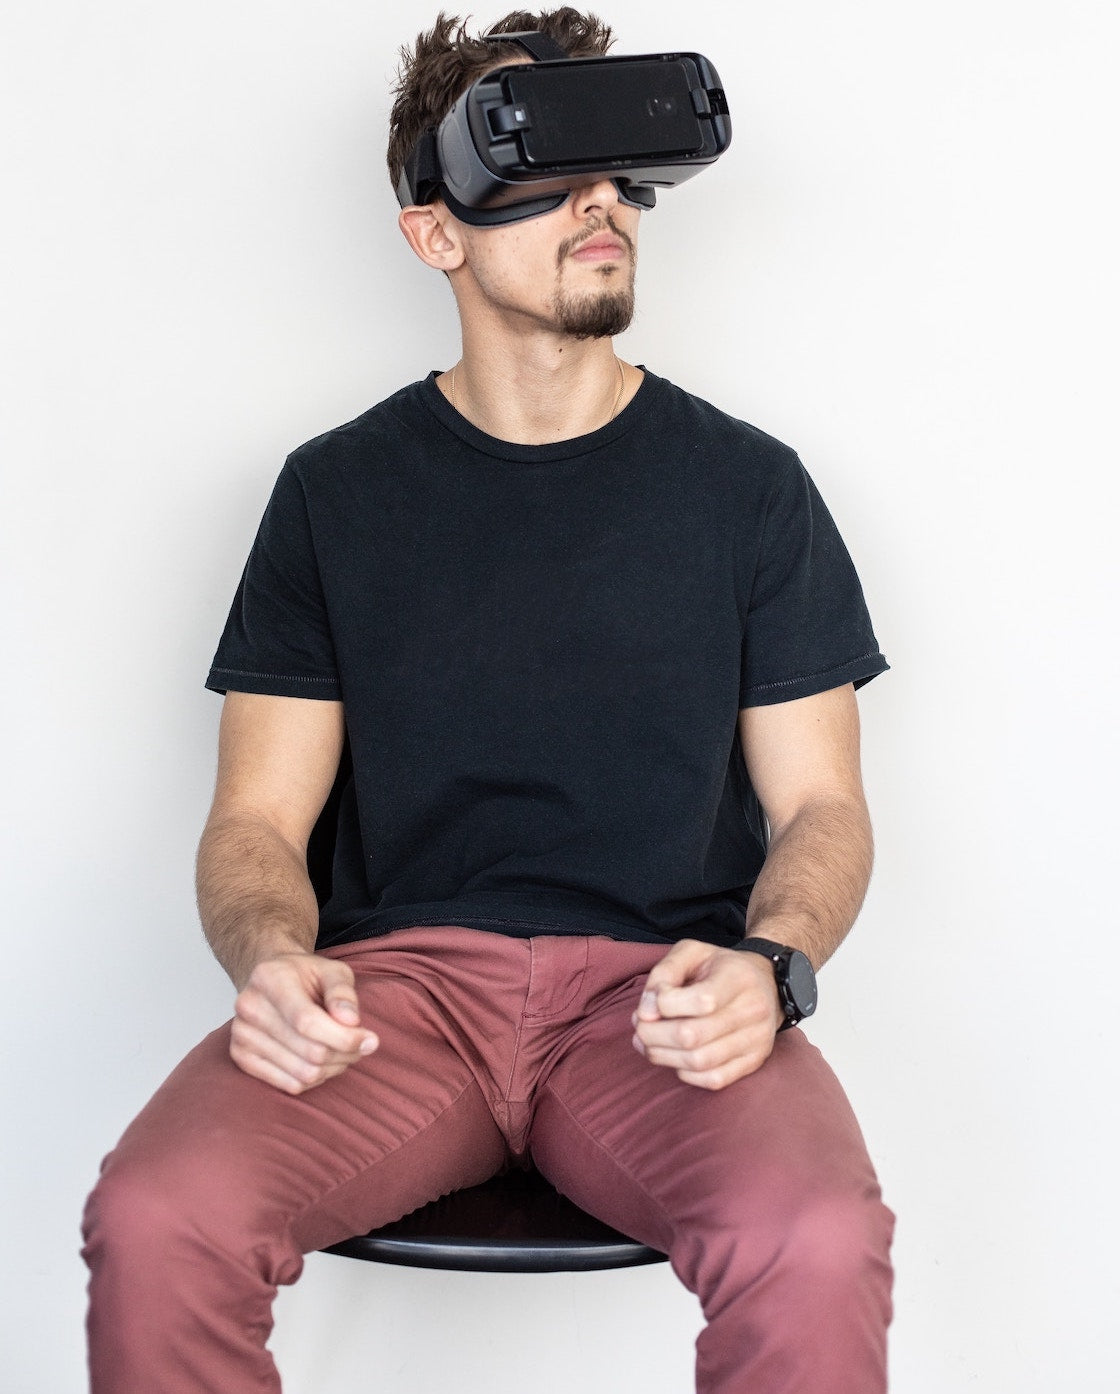 Tips To Create A Room Ready For Virtual Reality